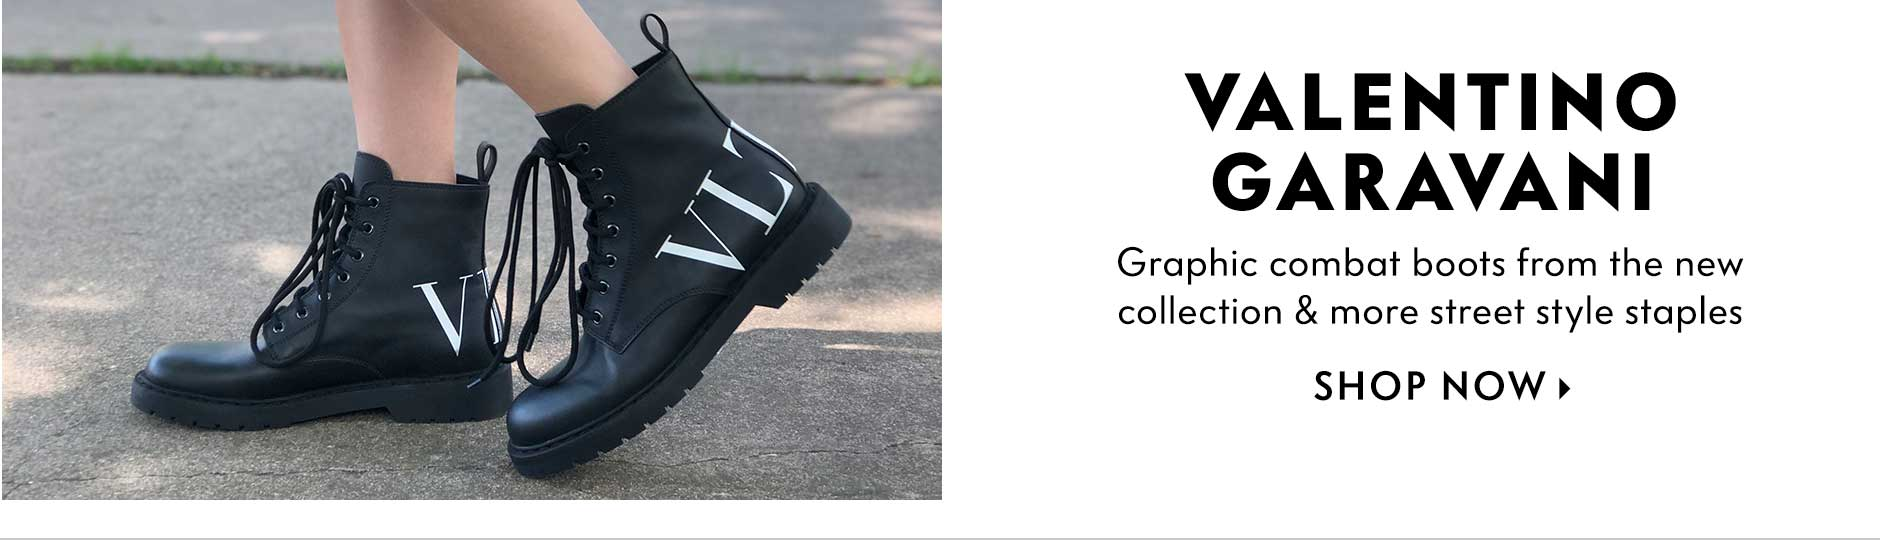 Valentino Garavani - Graphic combat boots from the new collection & more street style staples